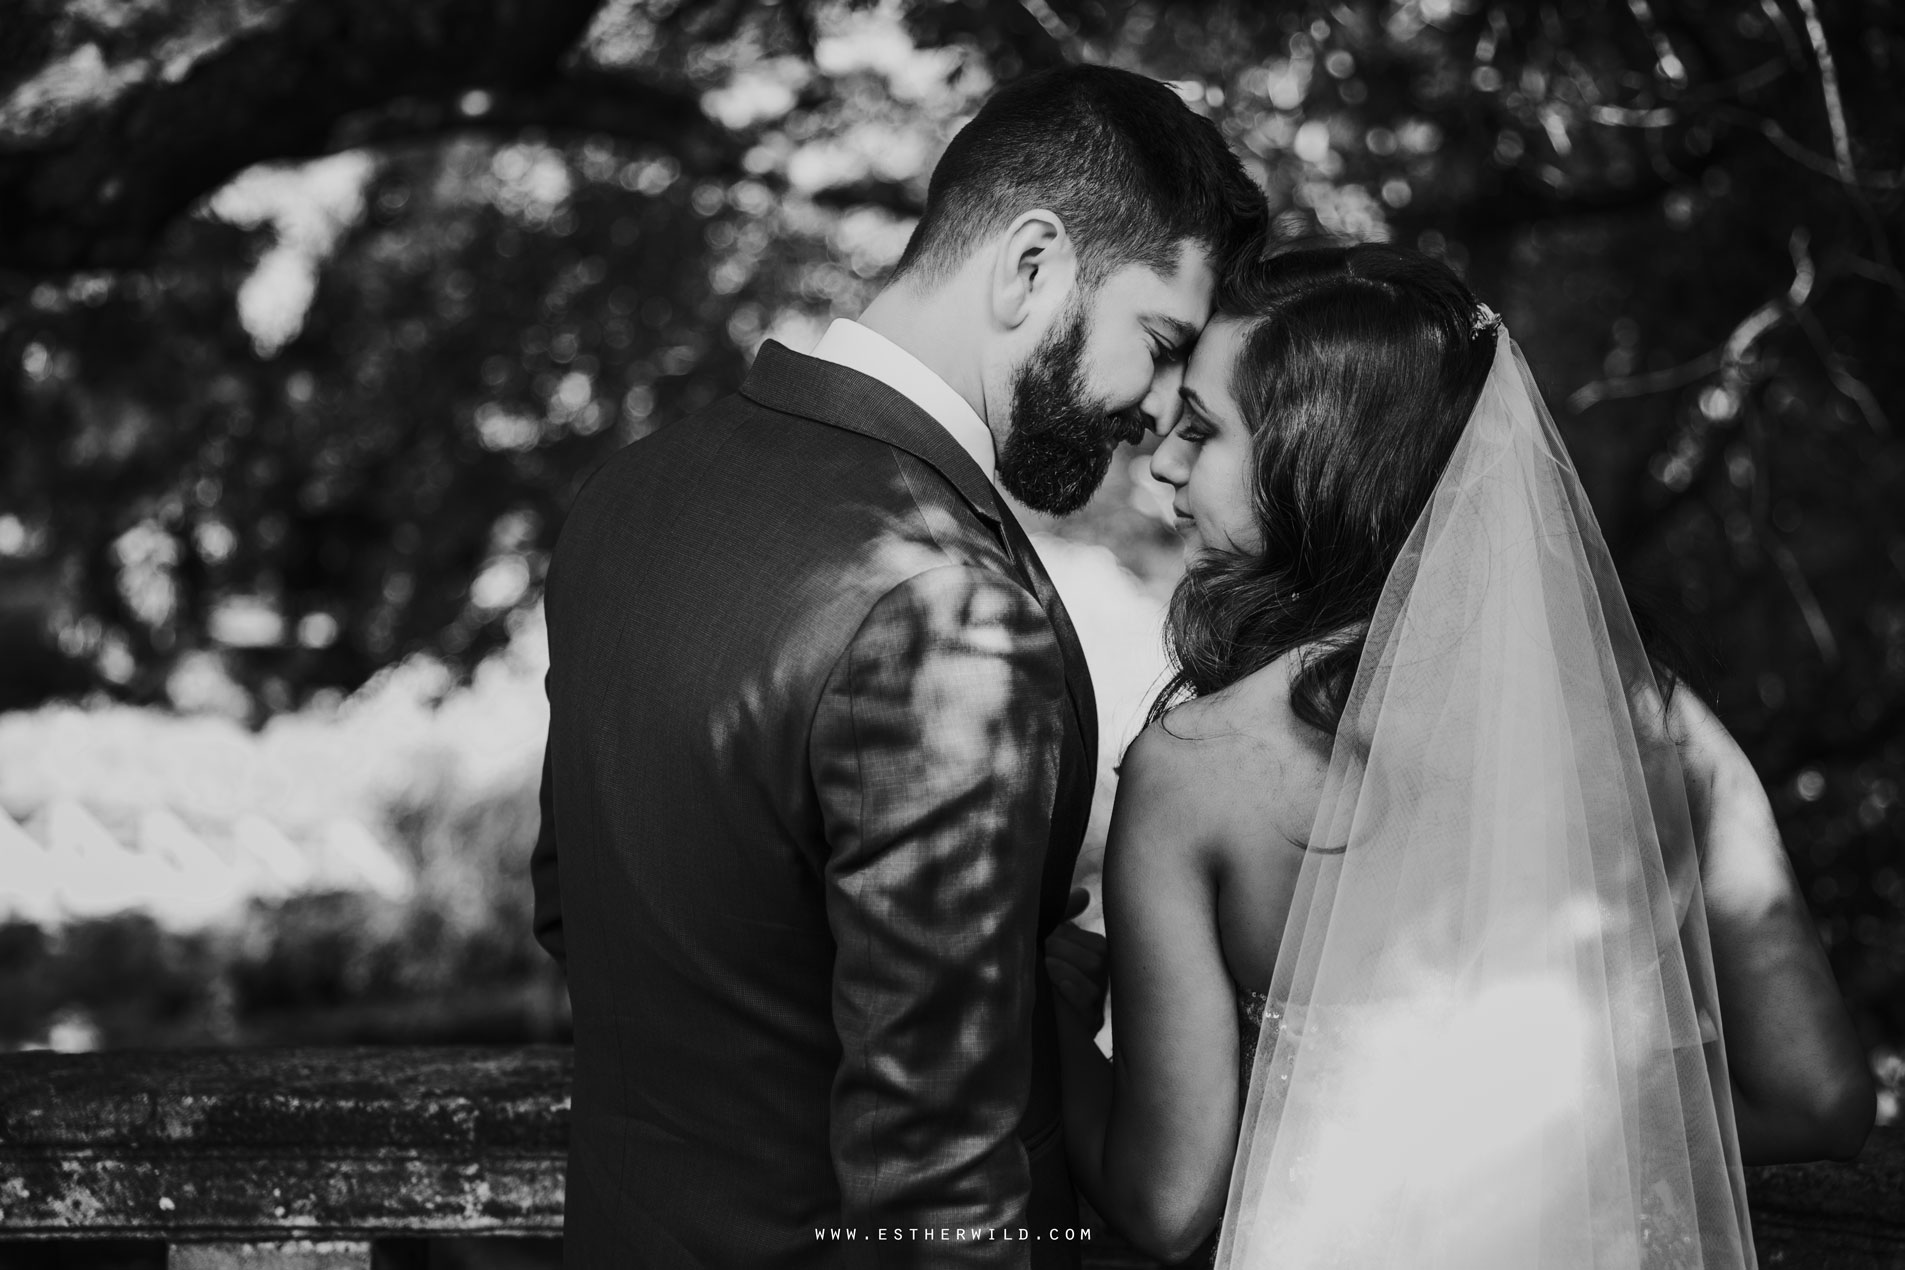 Twickenham_Registry_Office_London_Wedding_Ceremony_Esther_Wild_Photographer_IMG_0718.jpg